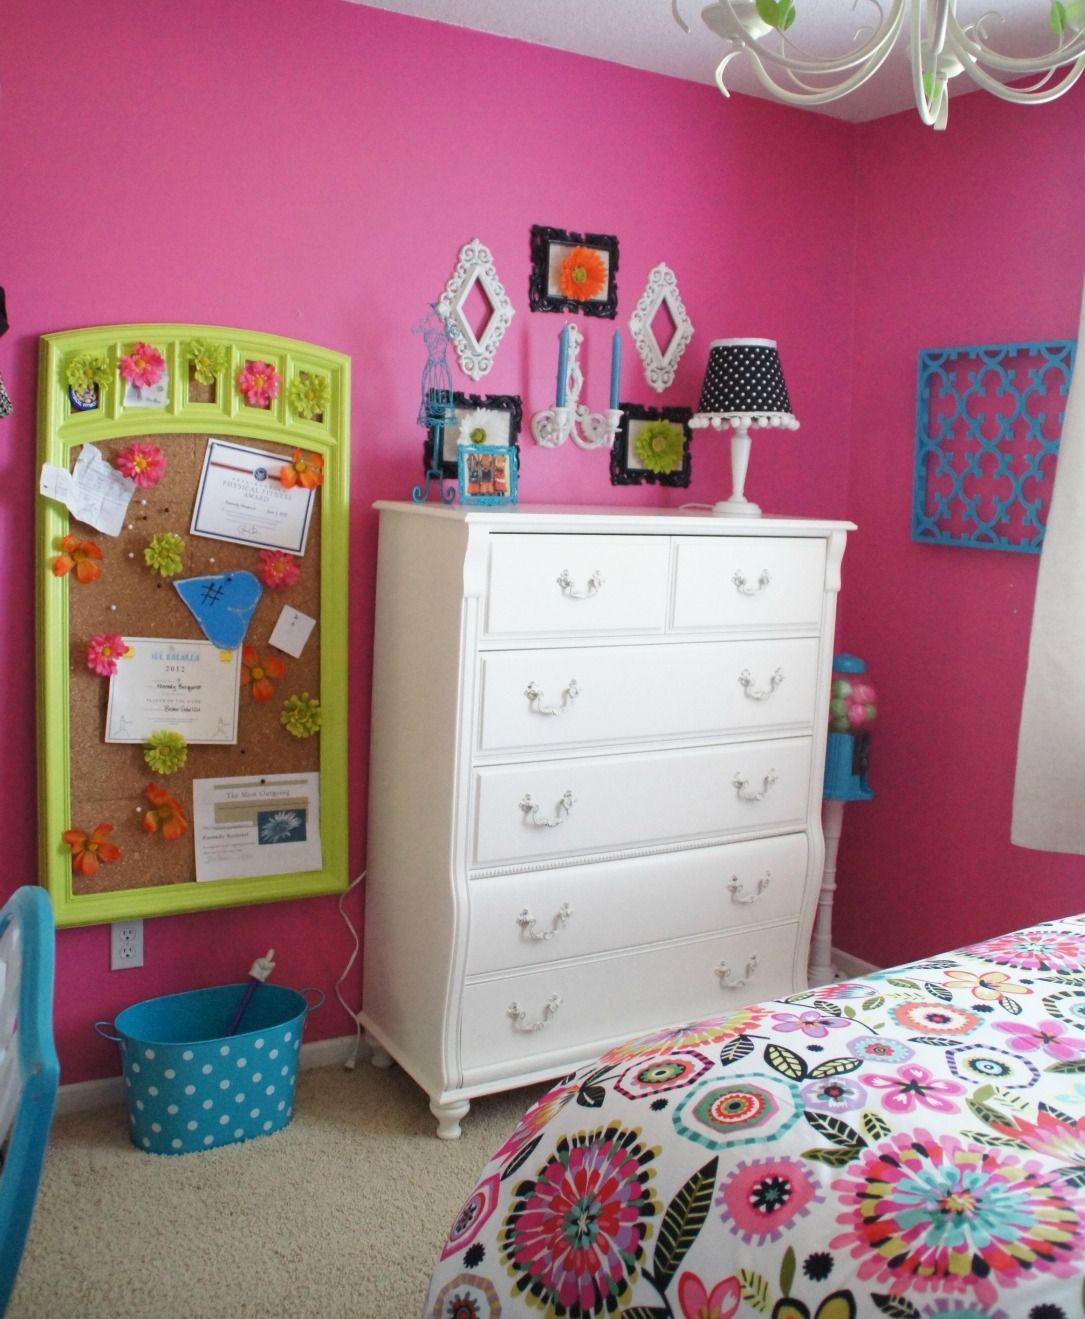 Teenager Bedroom Designs Entrancing Adorable Tween Bedroom Design Idea For Girls With Fuchsia Wall Design Decoration